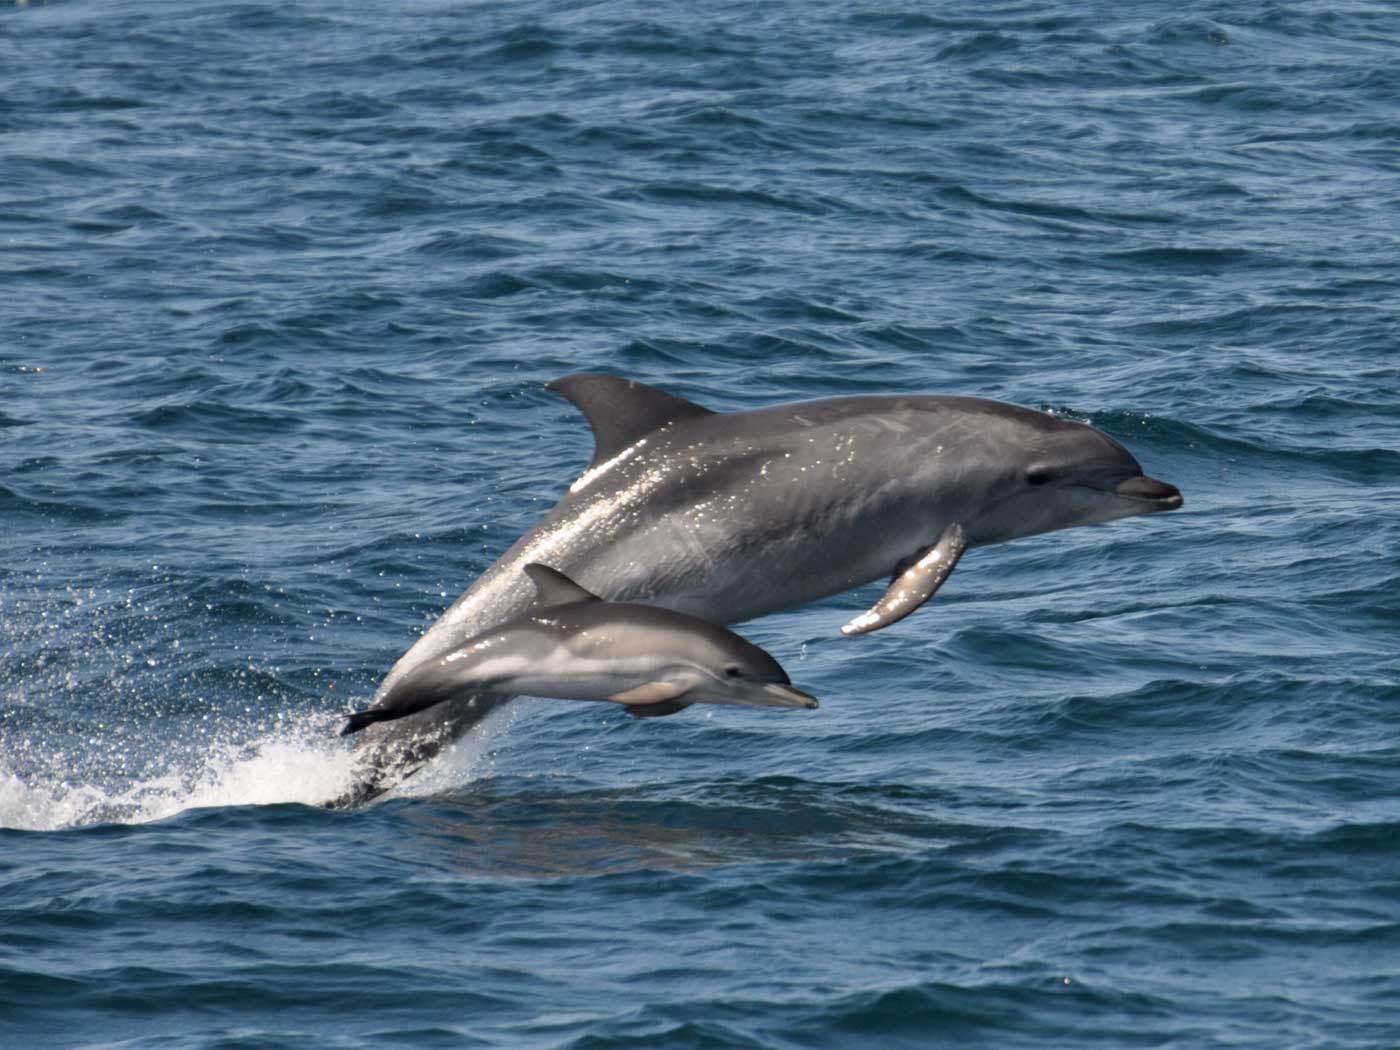 Dolphins Learn Tricks from Peers to Catch Fish